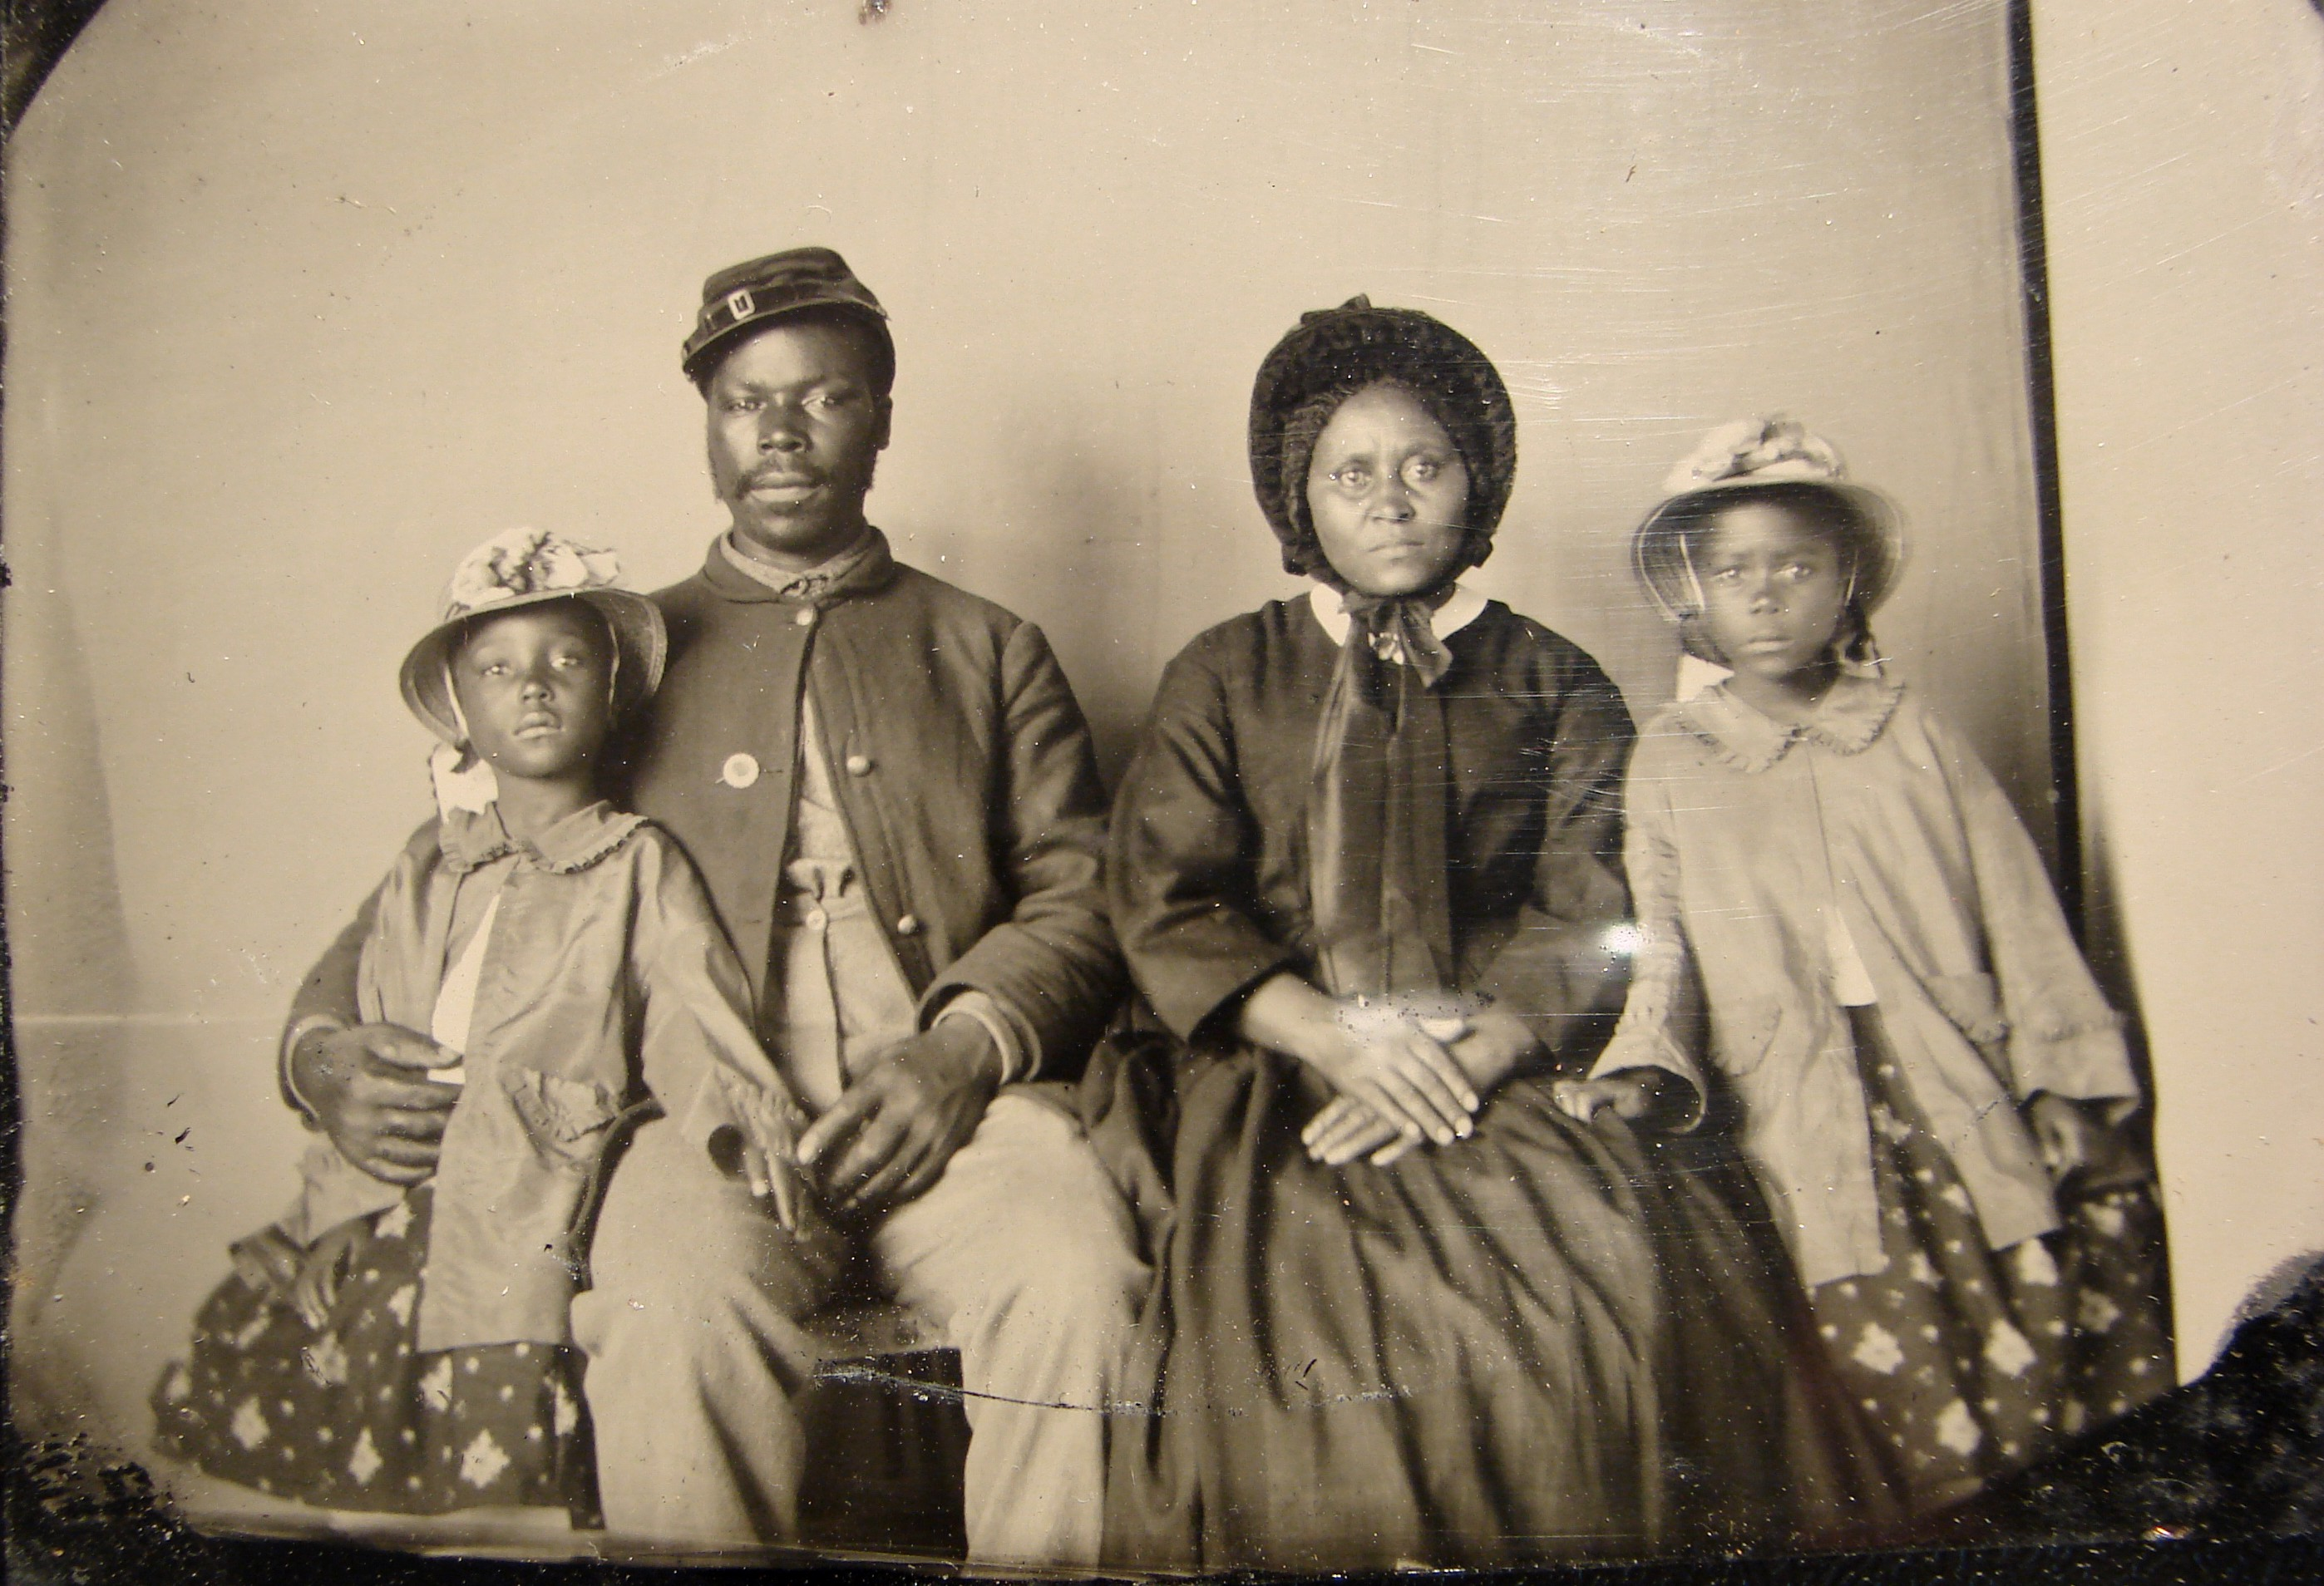 The Destruction of the Black Family